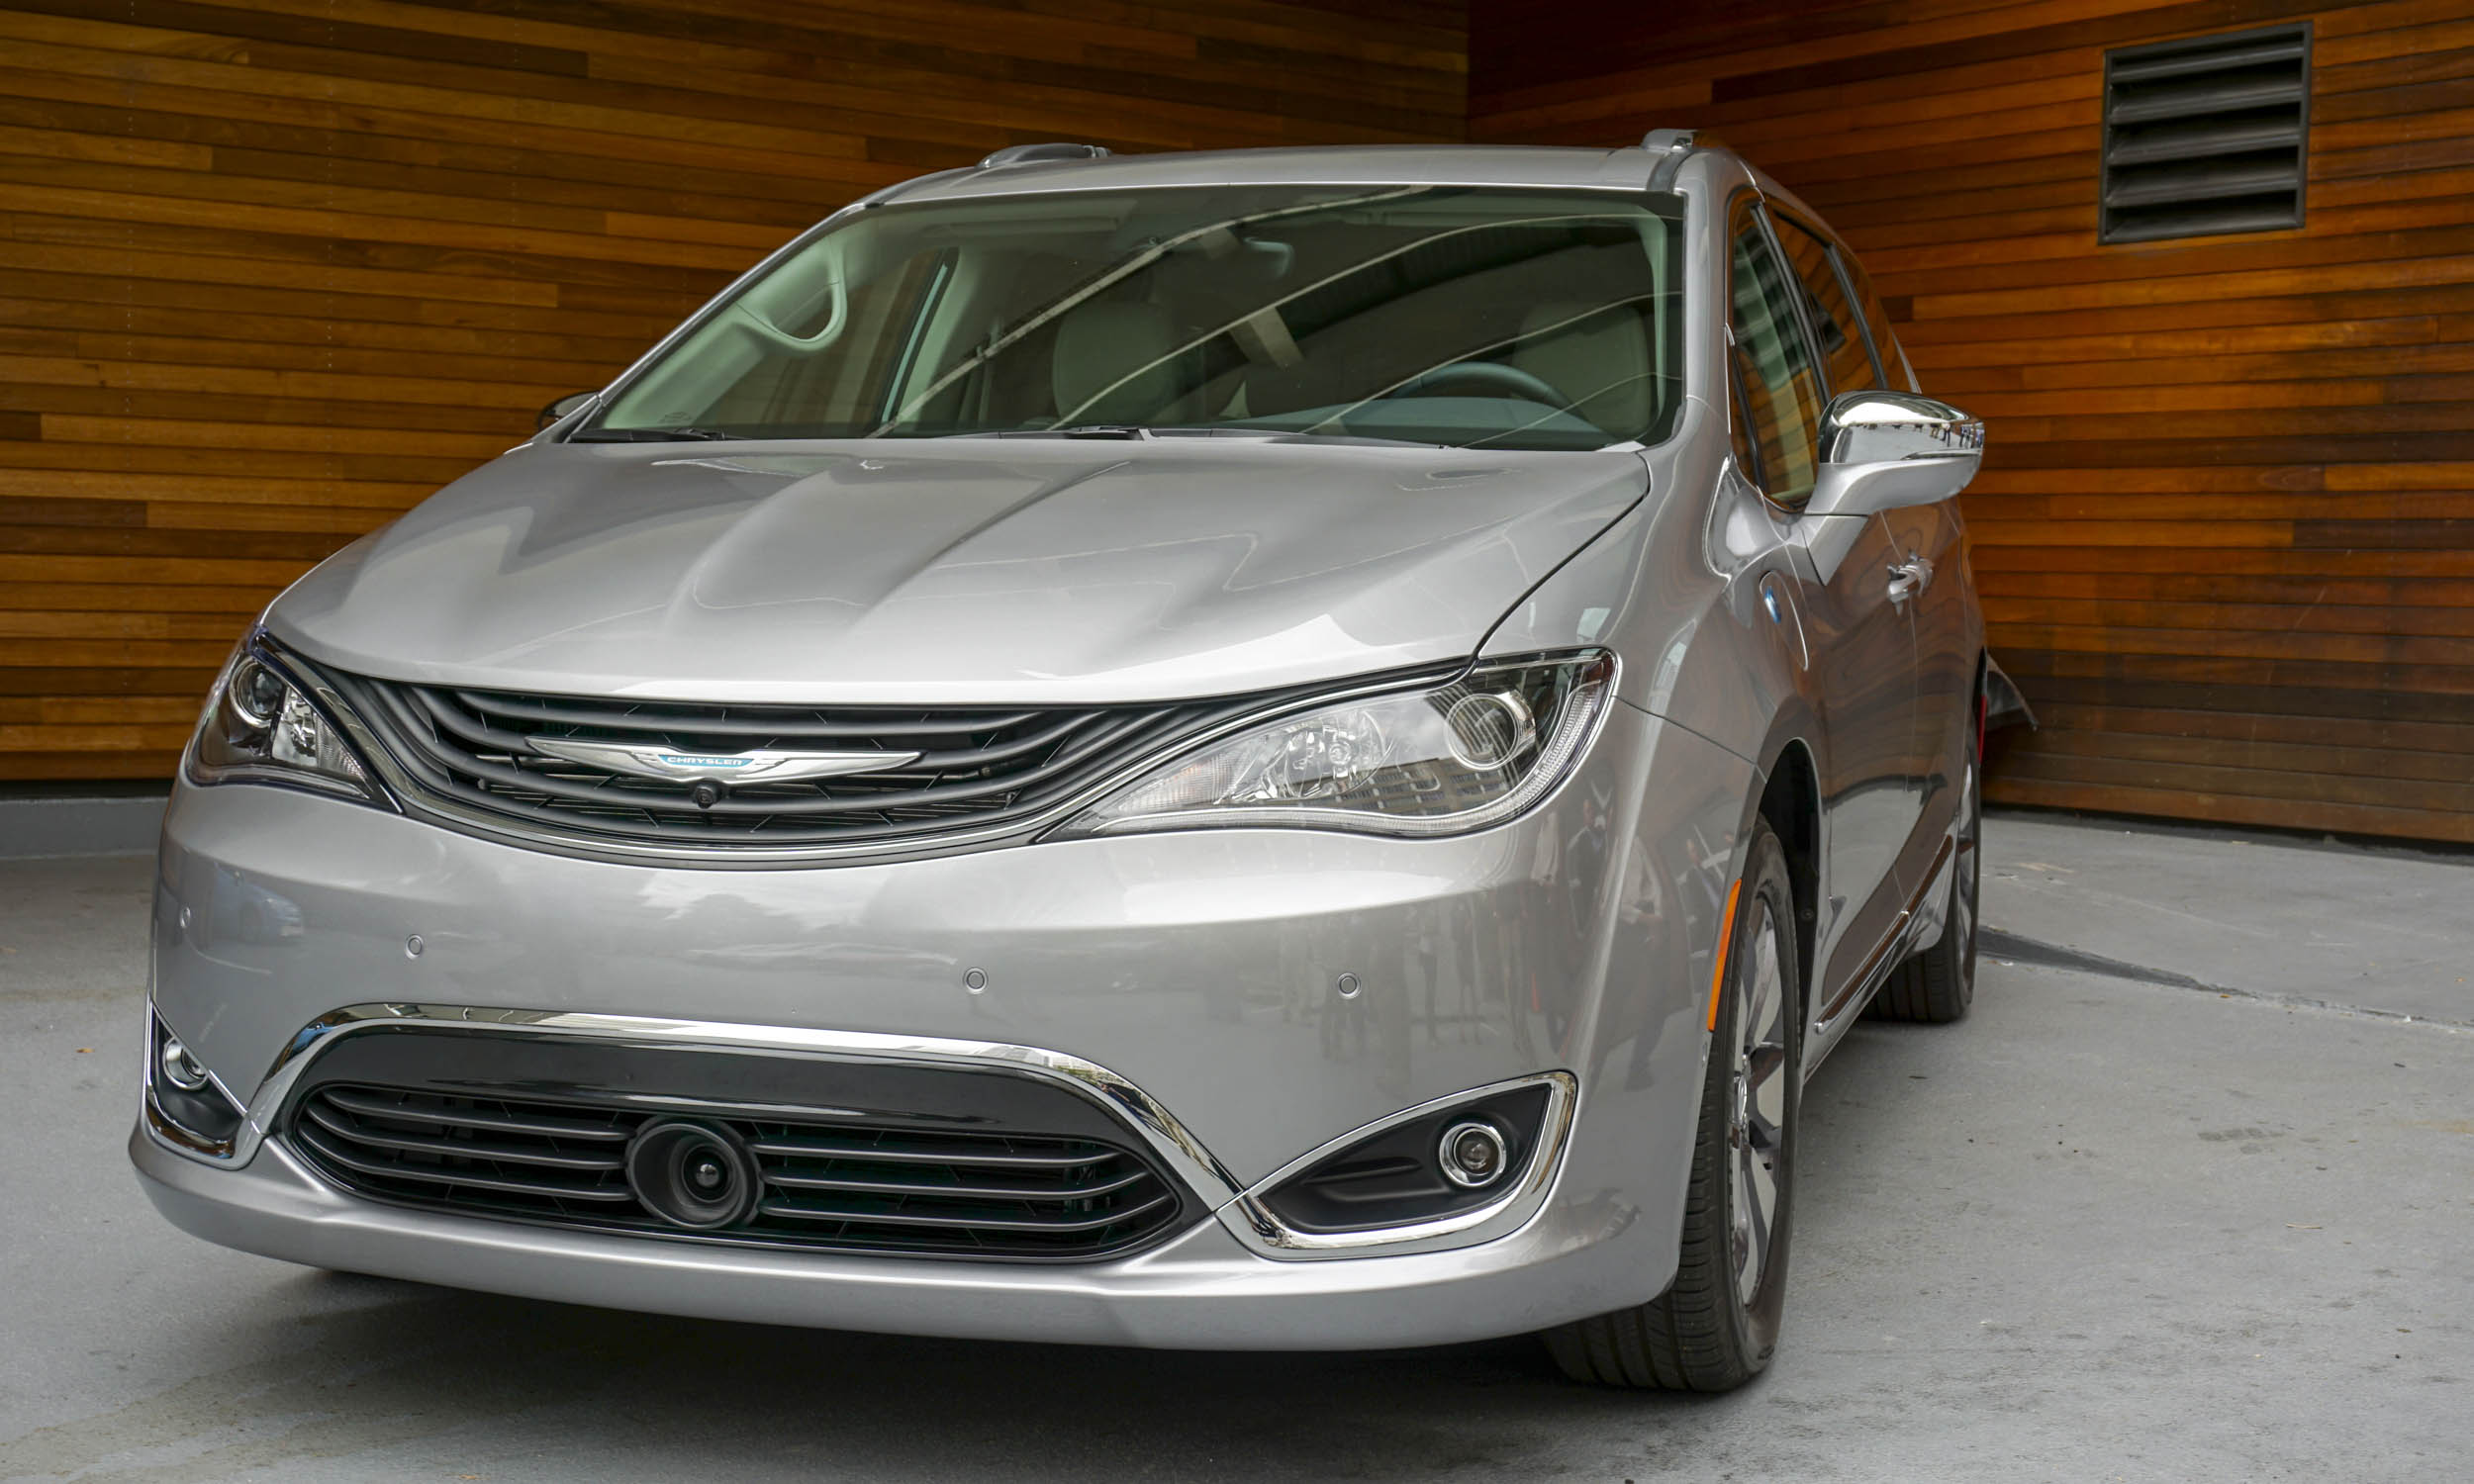 2017 Chrysler Pacifica Hybrid: First Look